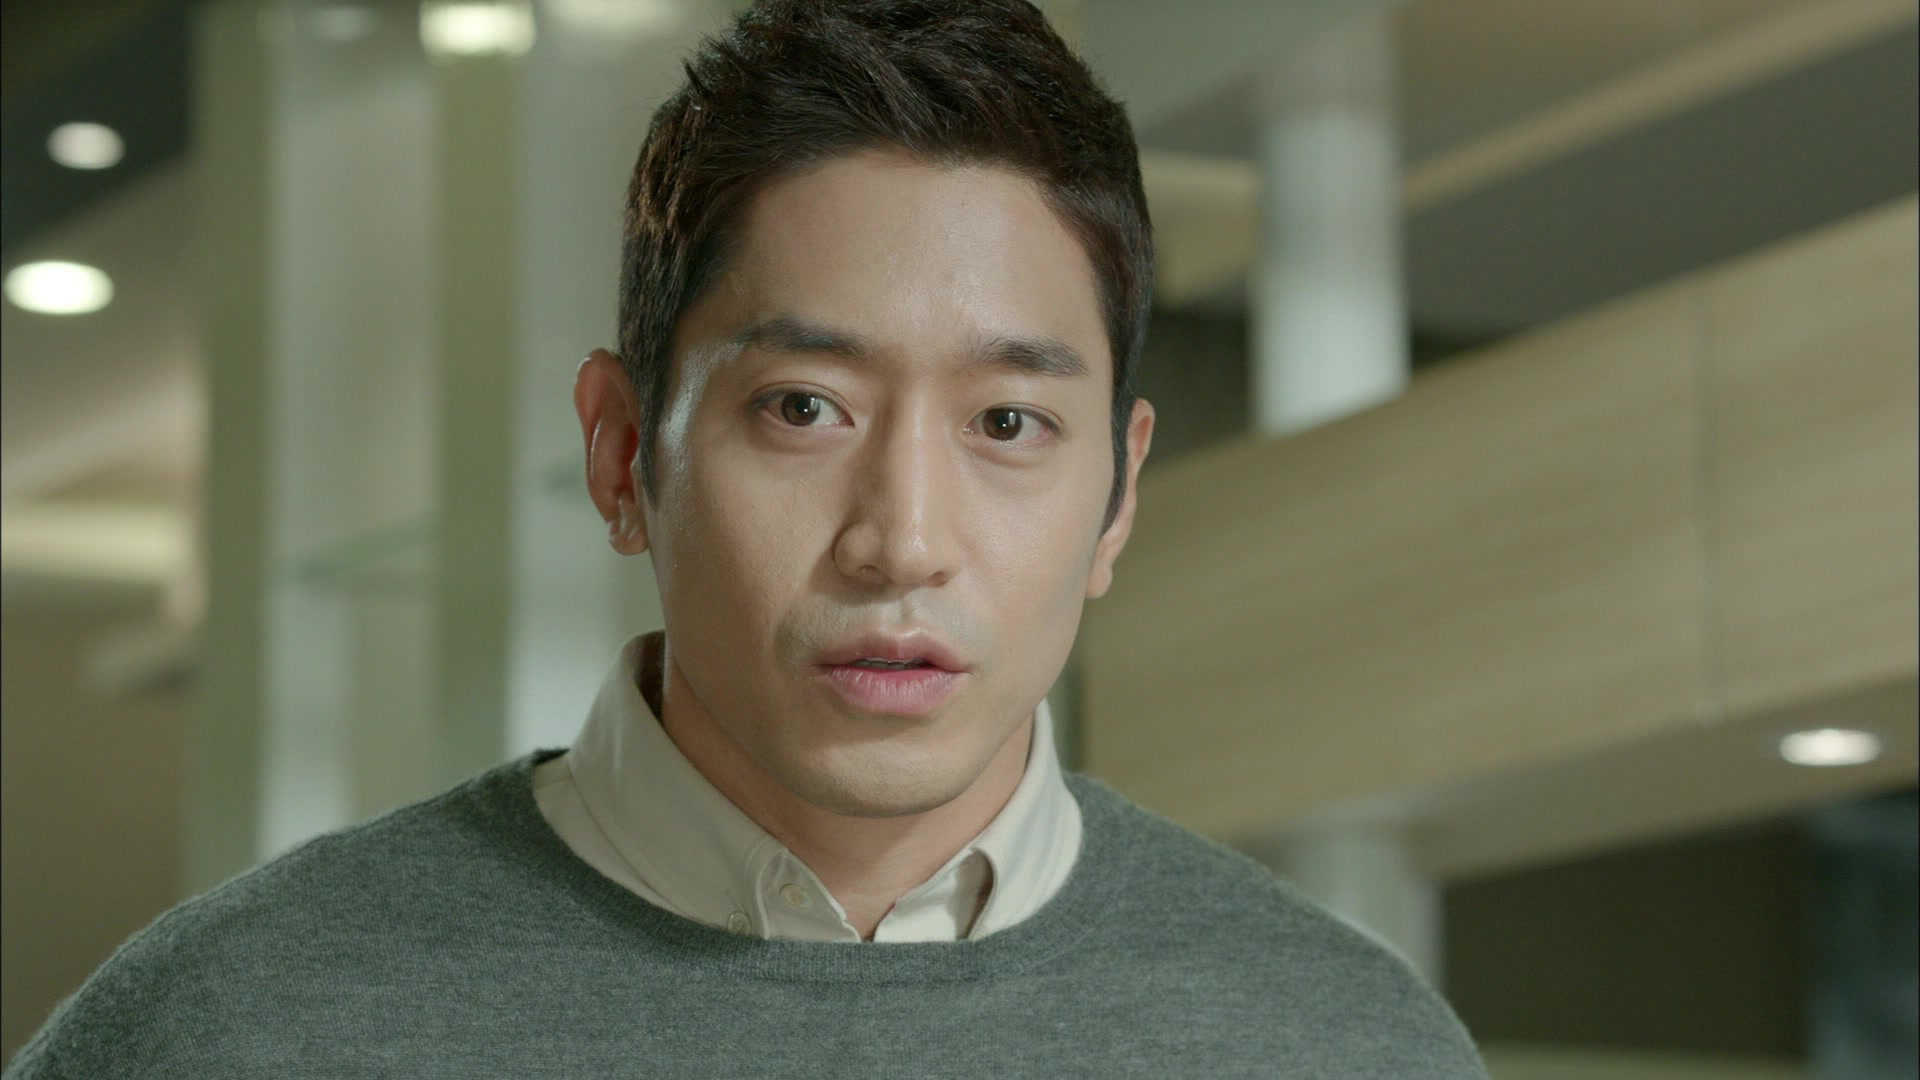 Discovery of Love Episode 16